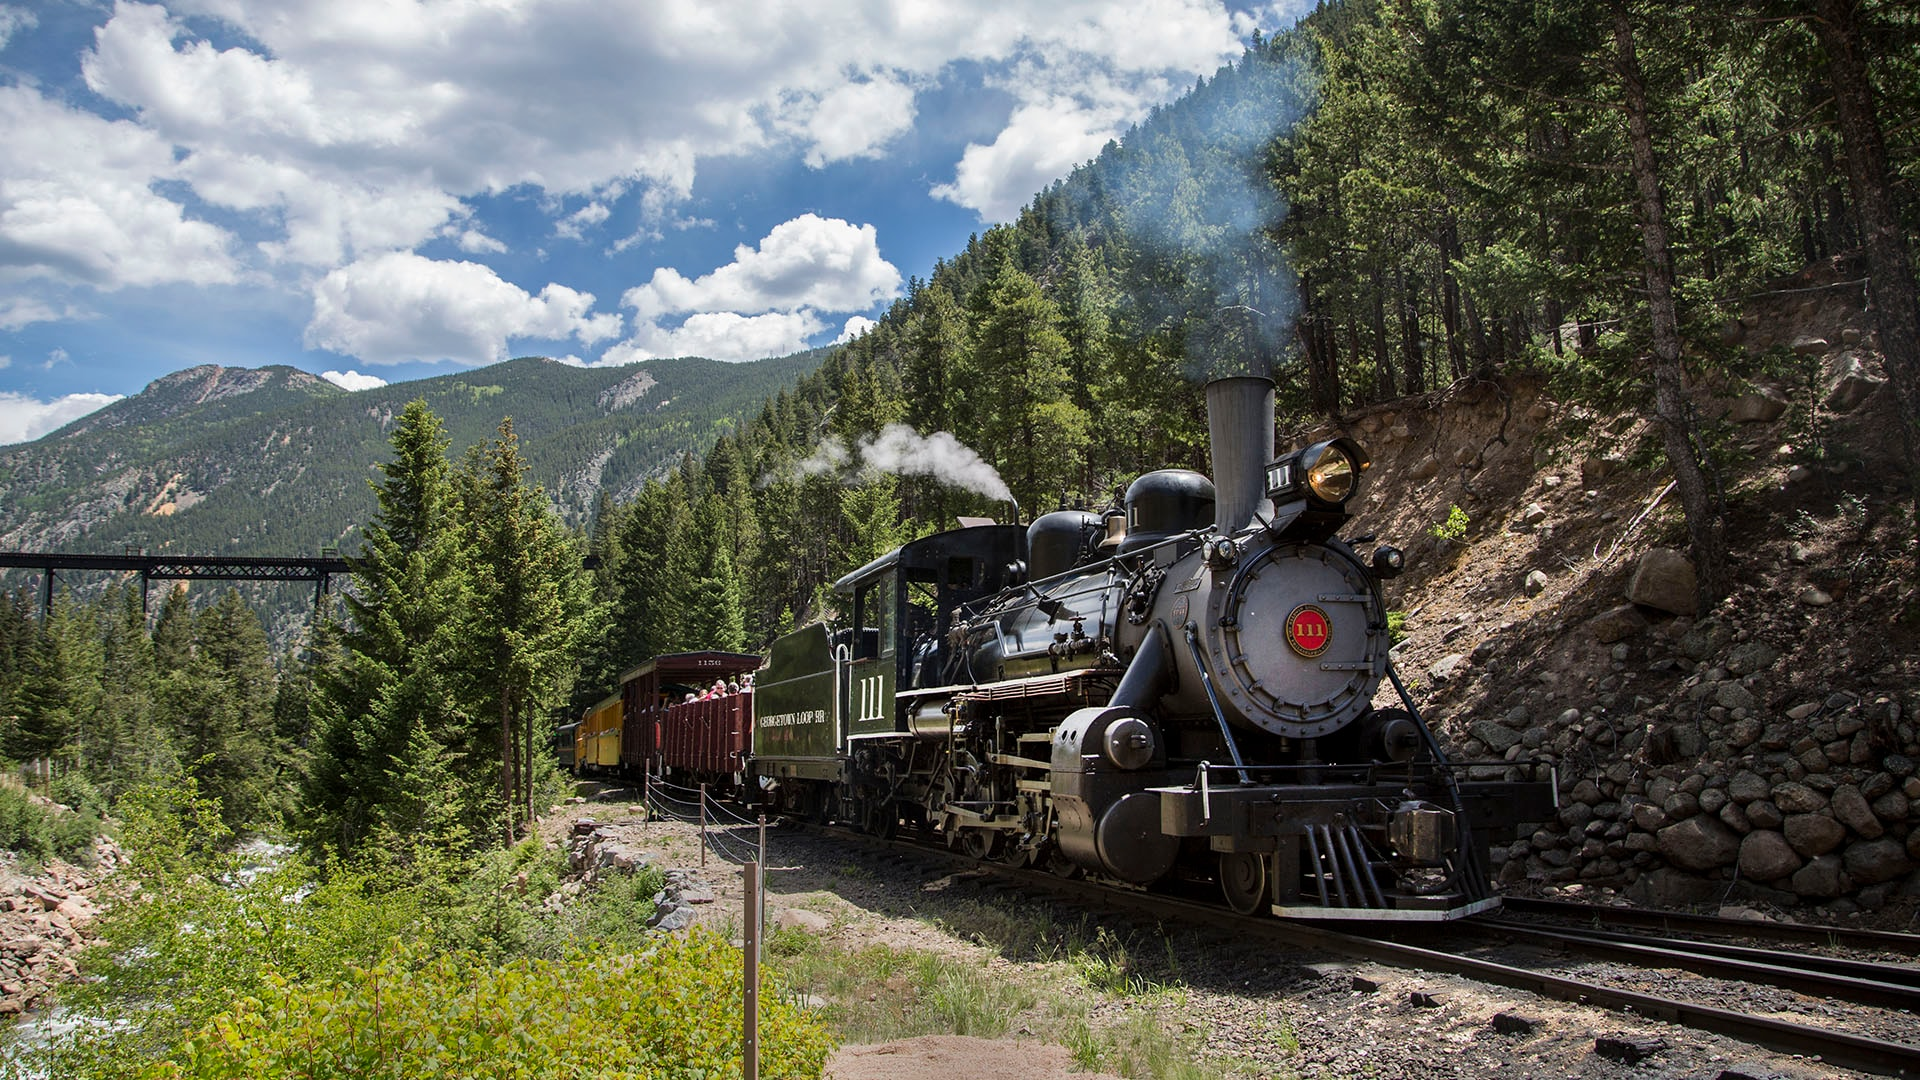 The Georgetown Loop Railroad was completed in 1884. The train runs between Georgetown and Silver Plume, Colorado.